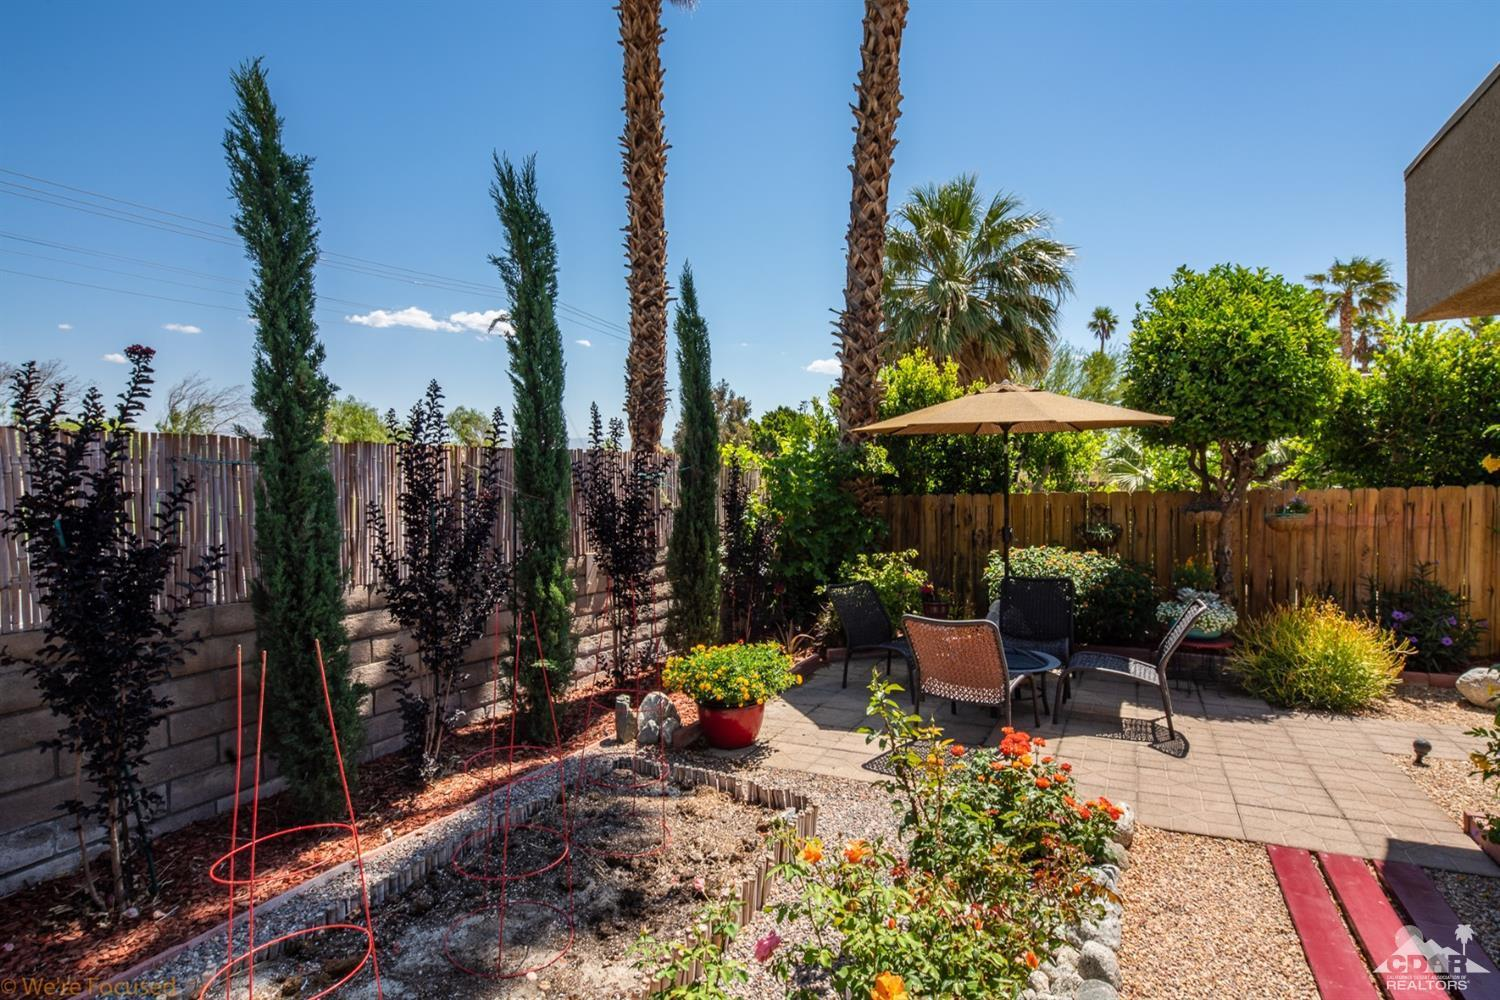 1622 Sunflower Court N, Palm Springs, California 92262, 2 Bedrooms Bedrooms, ,1 BathroomBathrooms,Residential,Sold,1622 Sunflower Court N,219016137